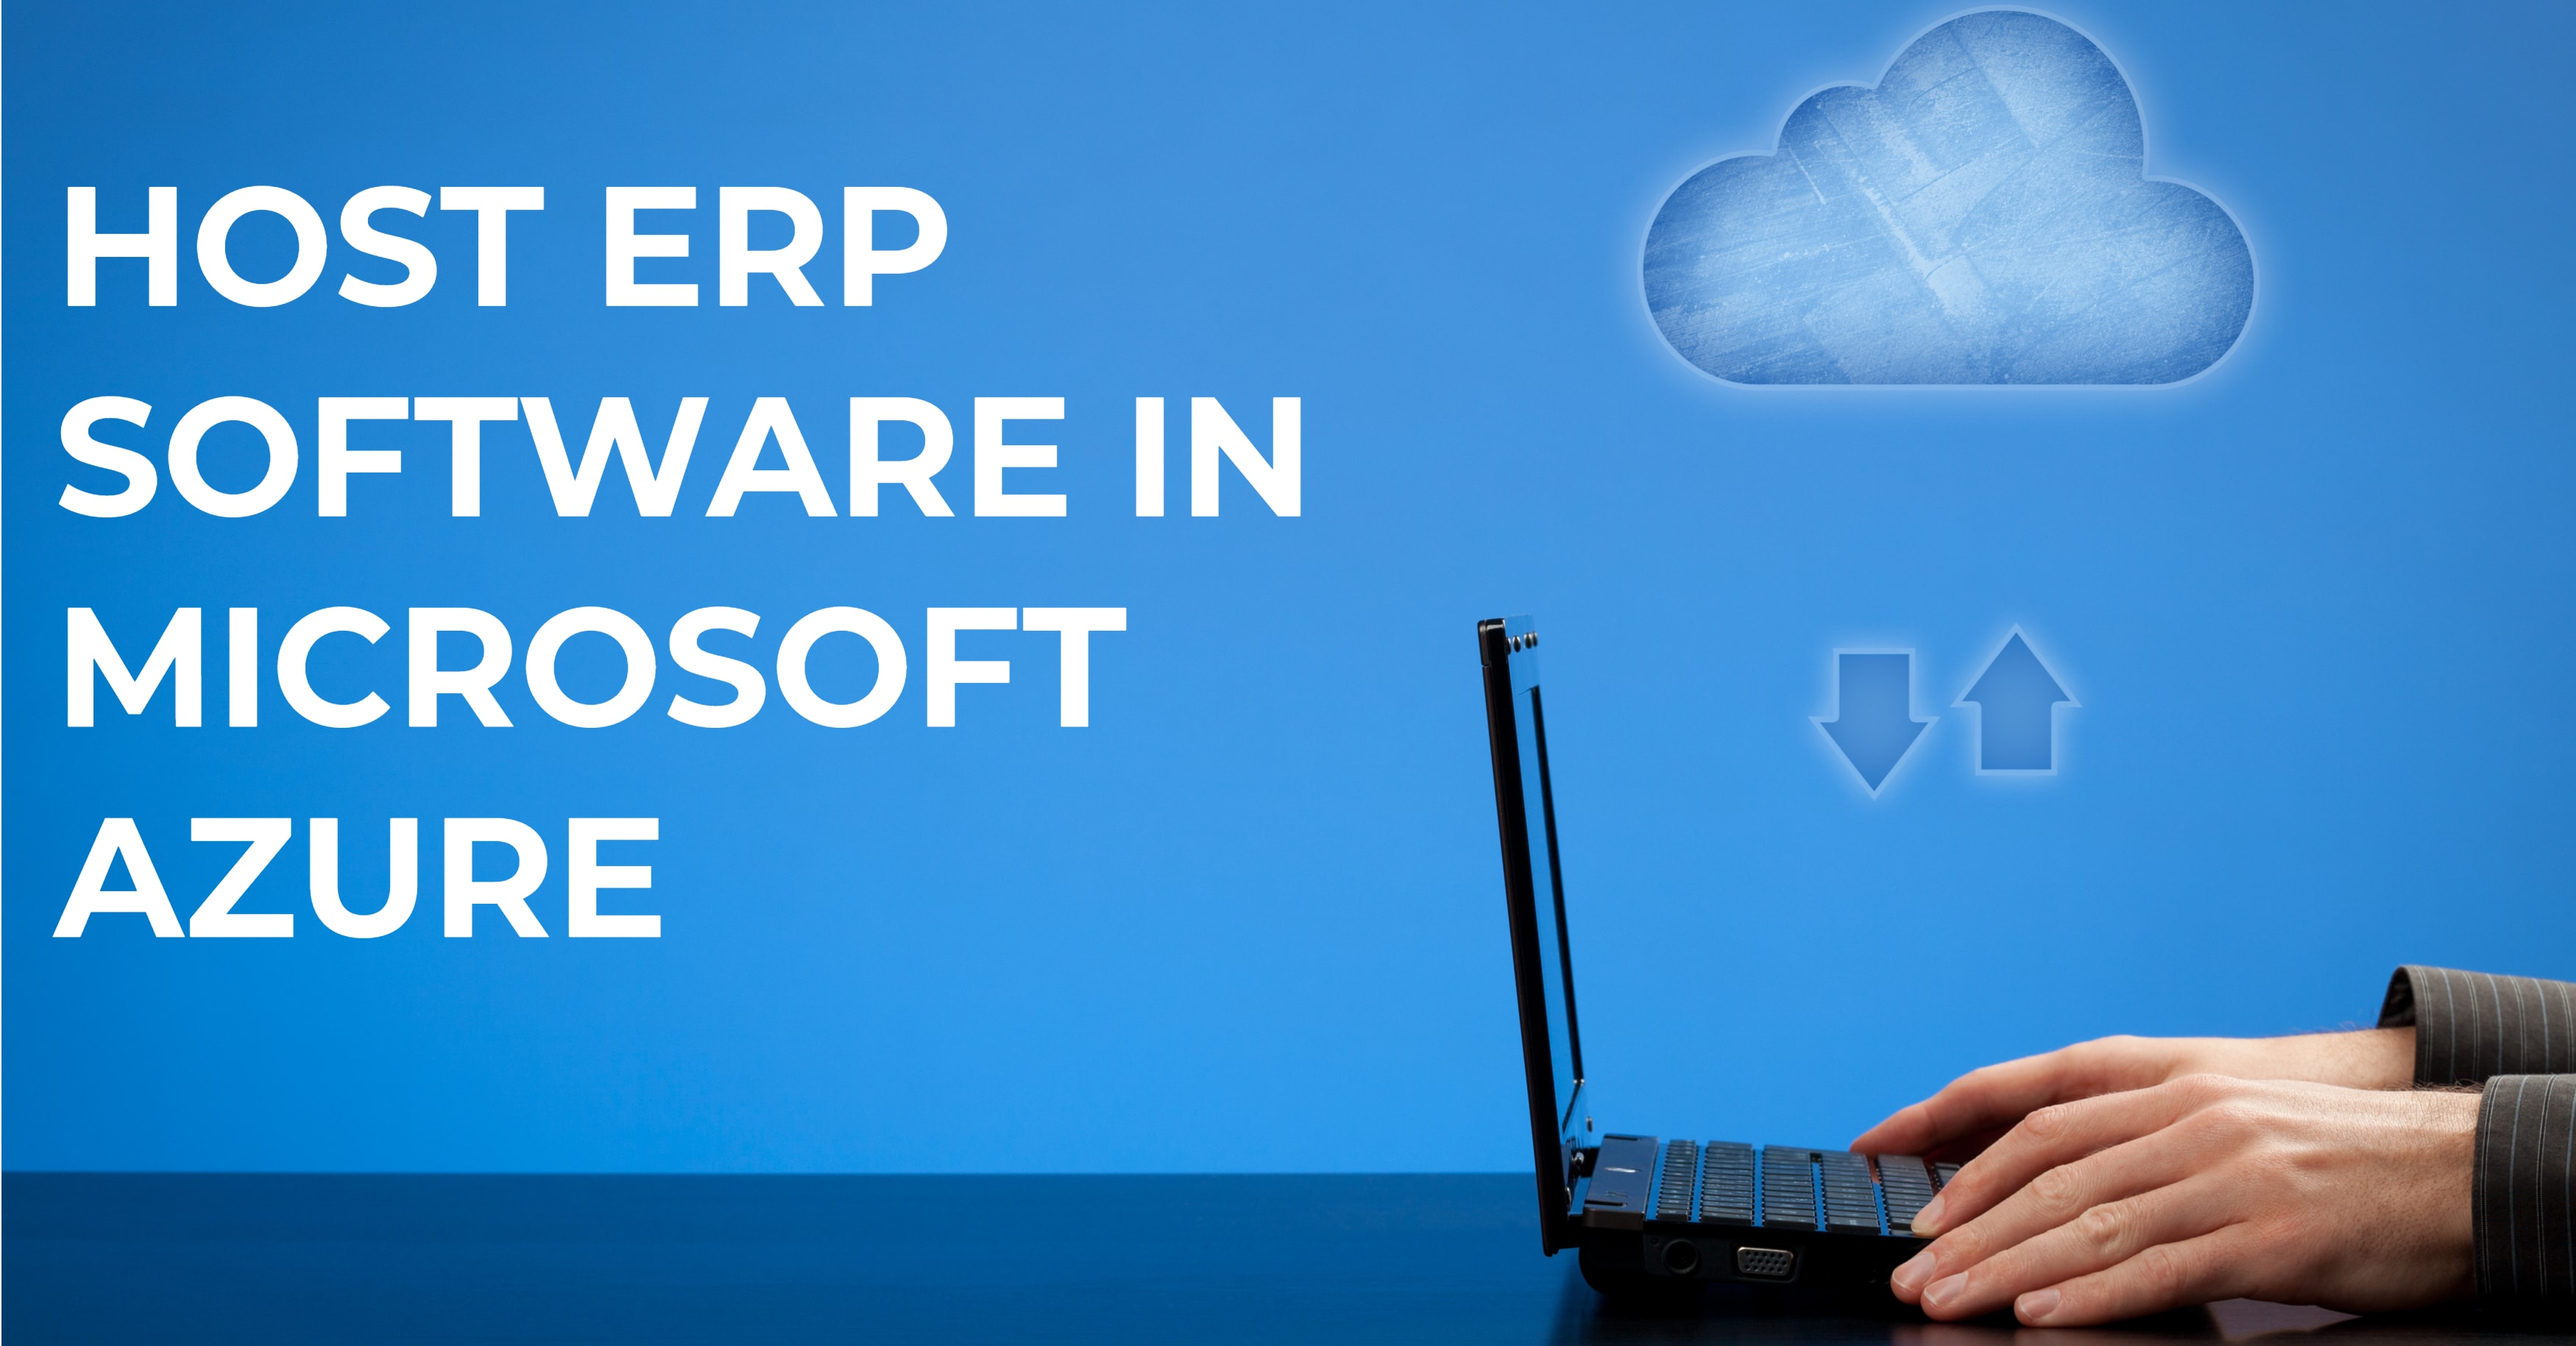 Why Host ERP Software in Microsoft Azure?